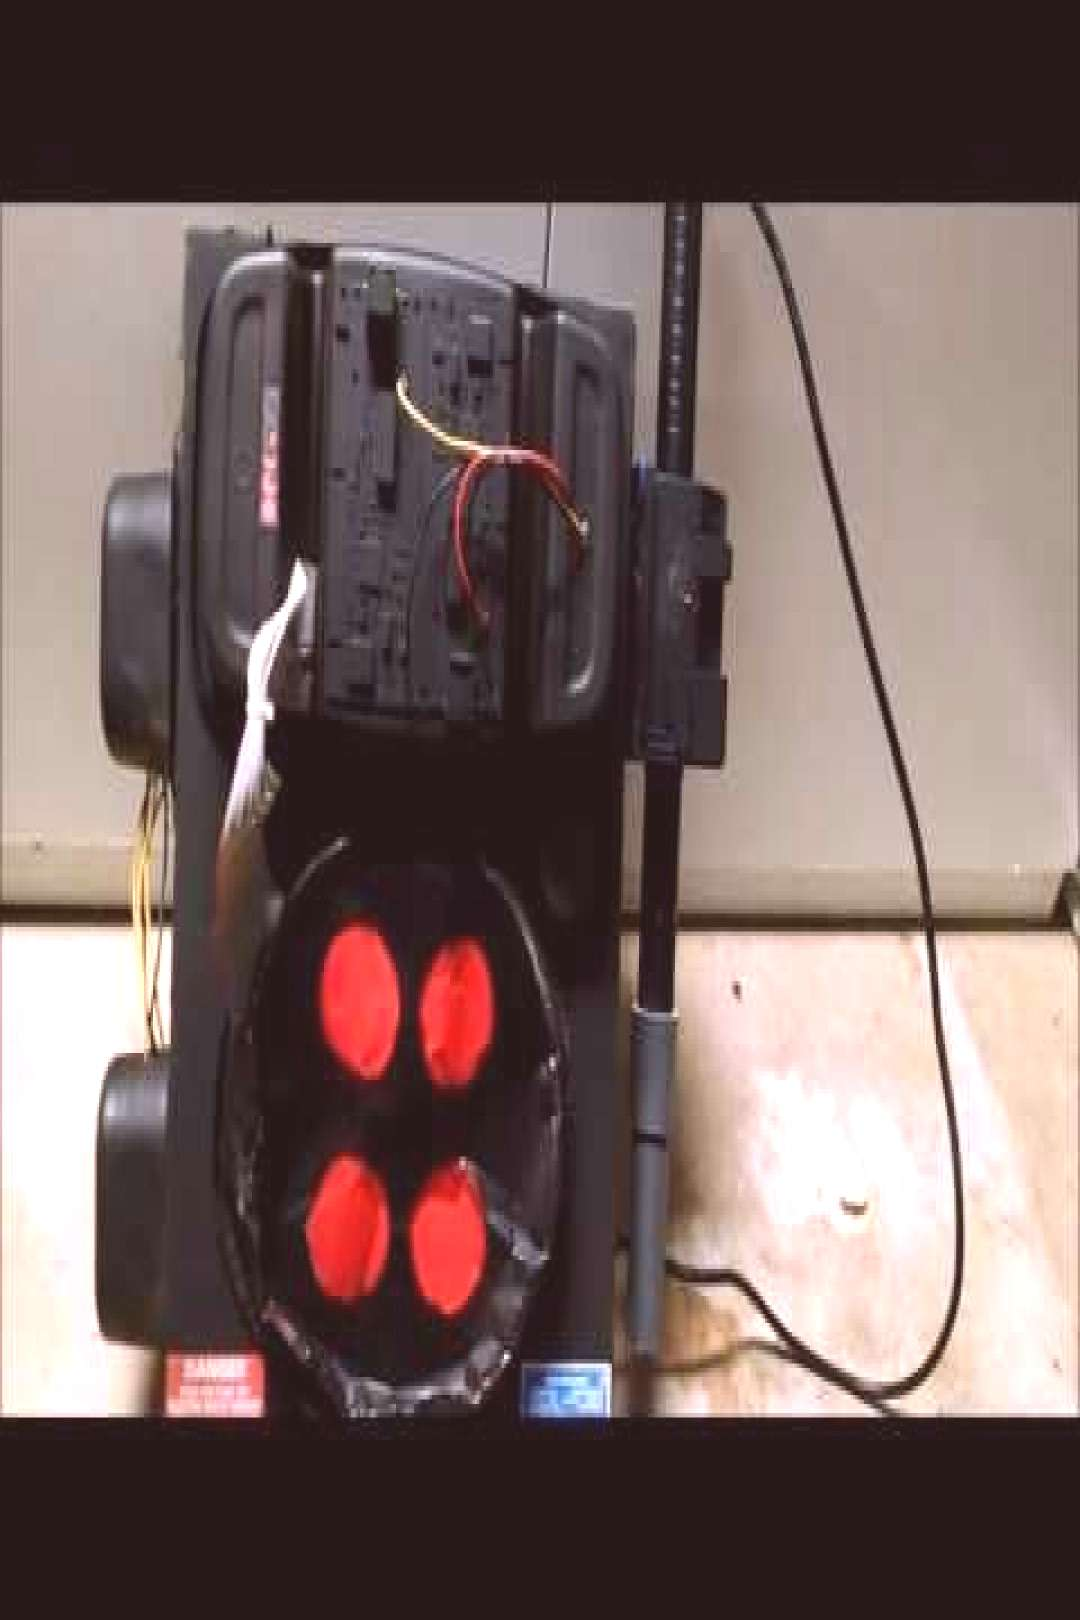 DIY $5 Ghostbusters Proton Pack - DIY $5 Ghostbusters Proton Pack – YouTube -